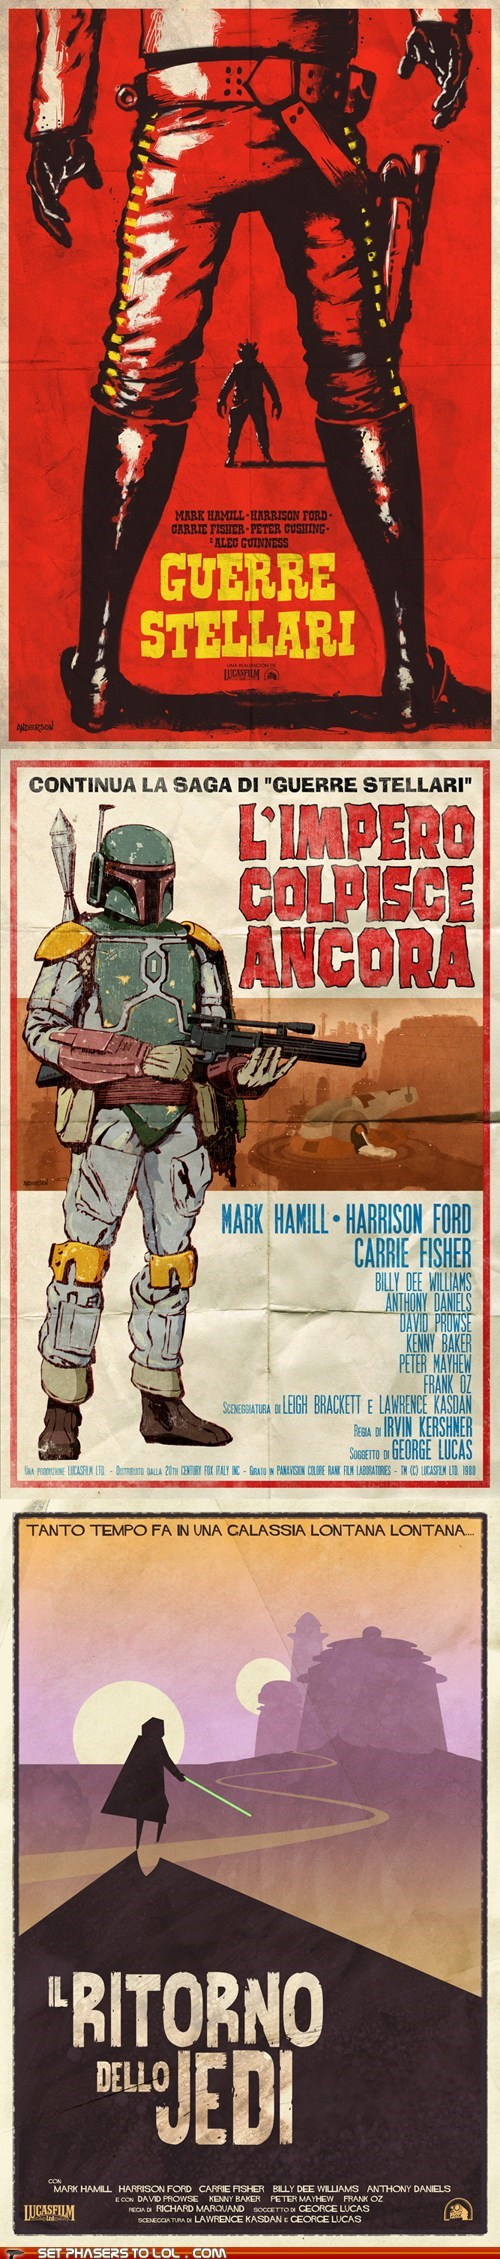 Star Wars Trilogy as Spaghetti Westerns